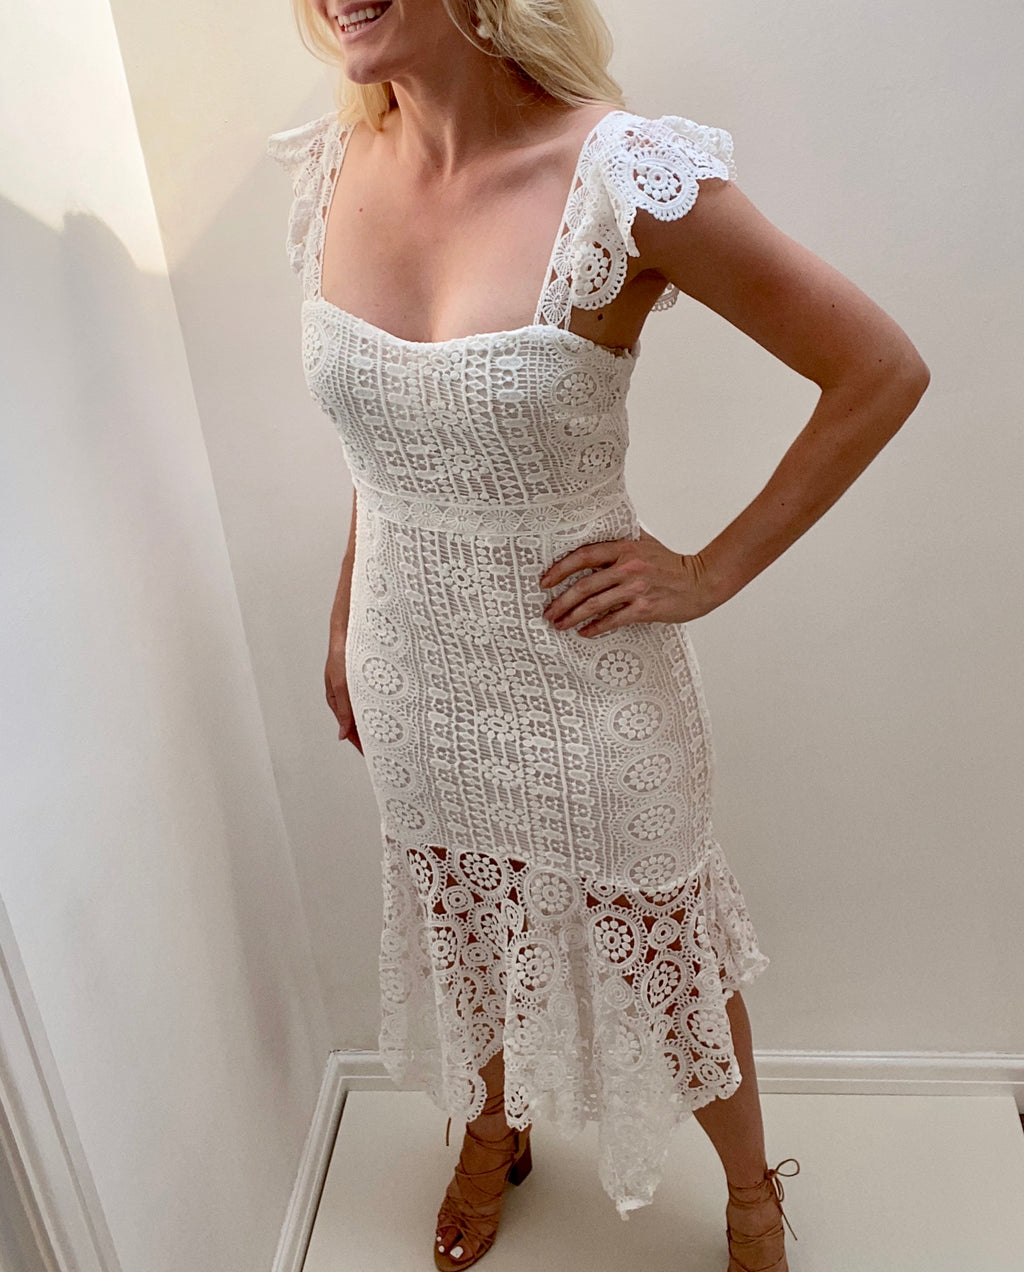 **PRE ORDER** 8TH SIGN SUMMER: SORRENTO CROCHET LACE MIDI